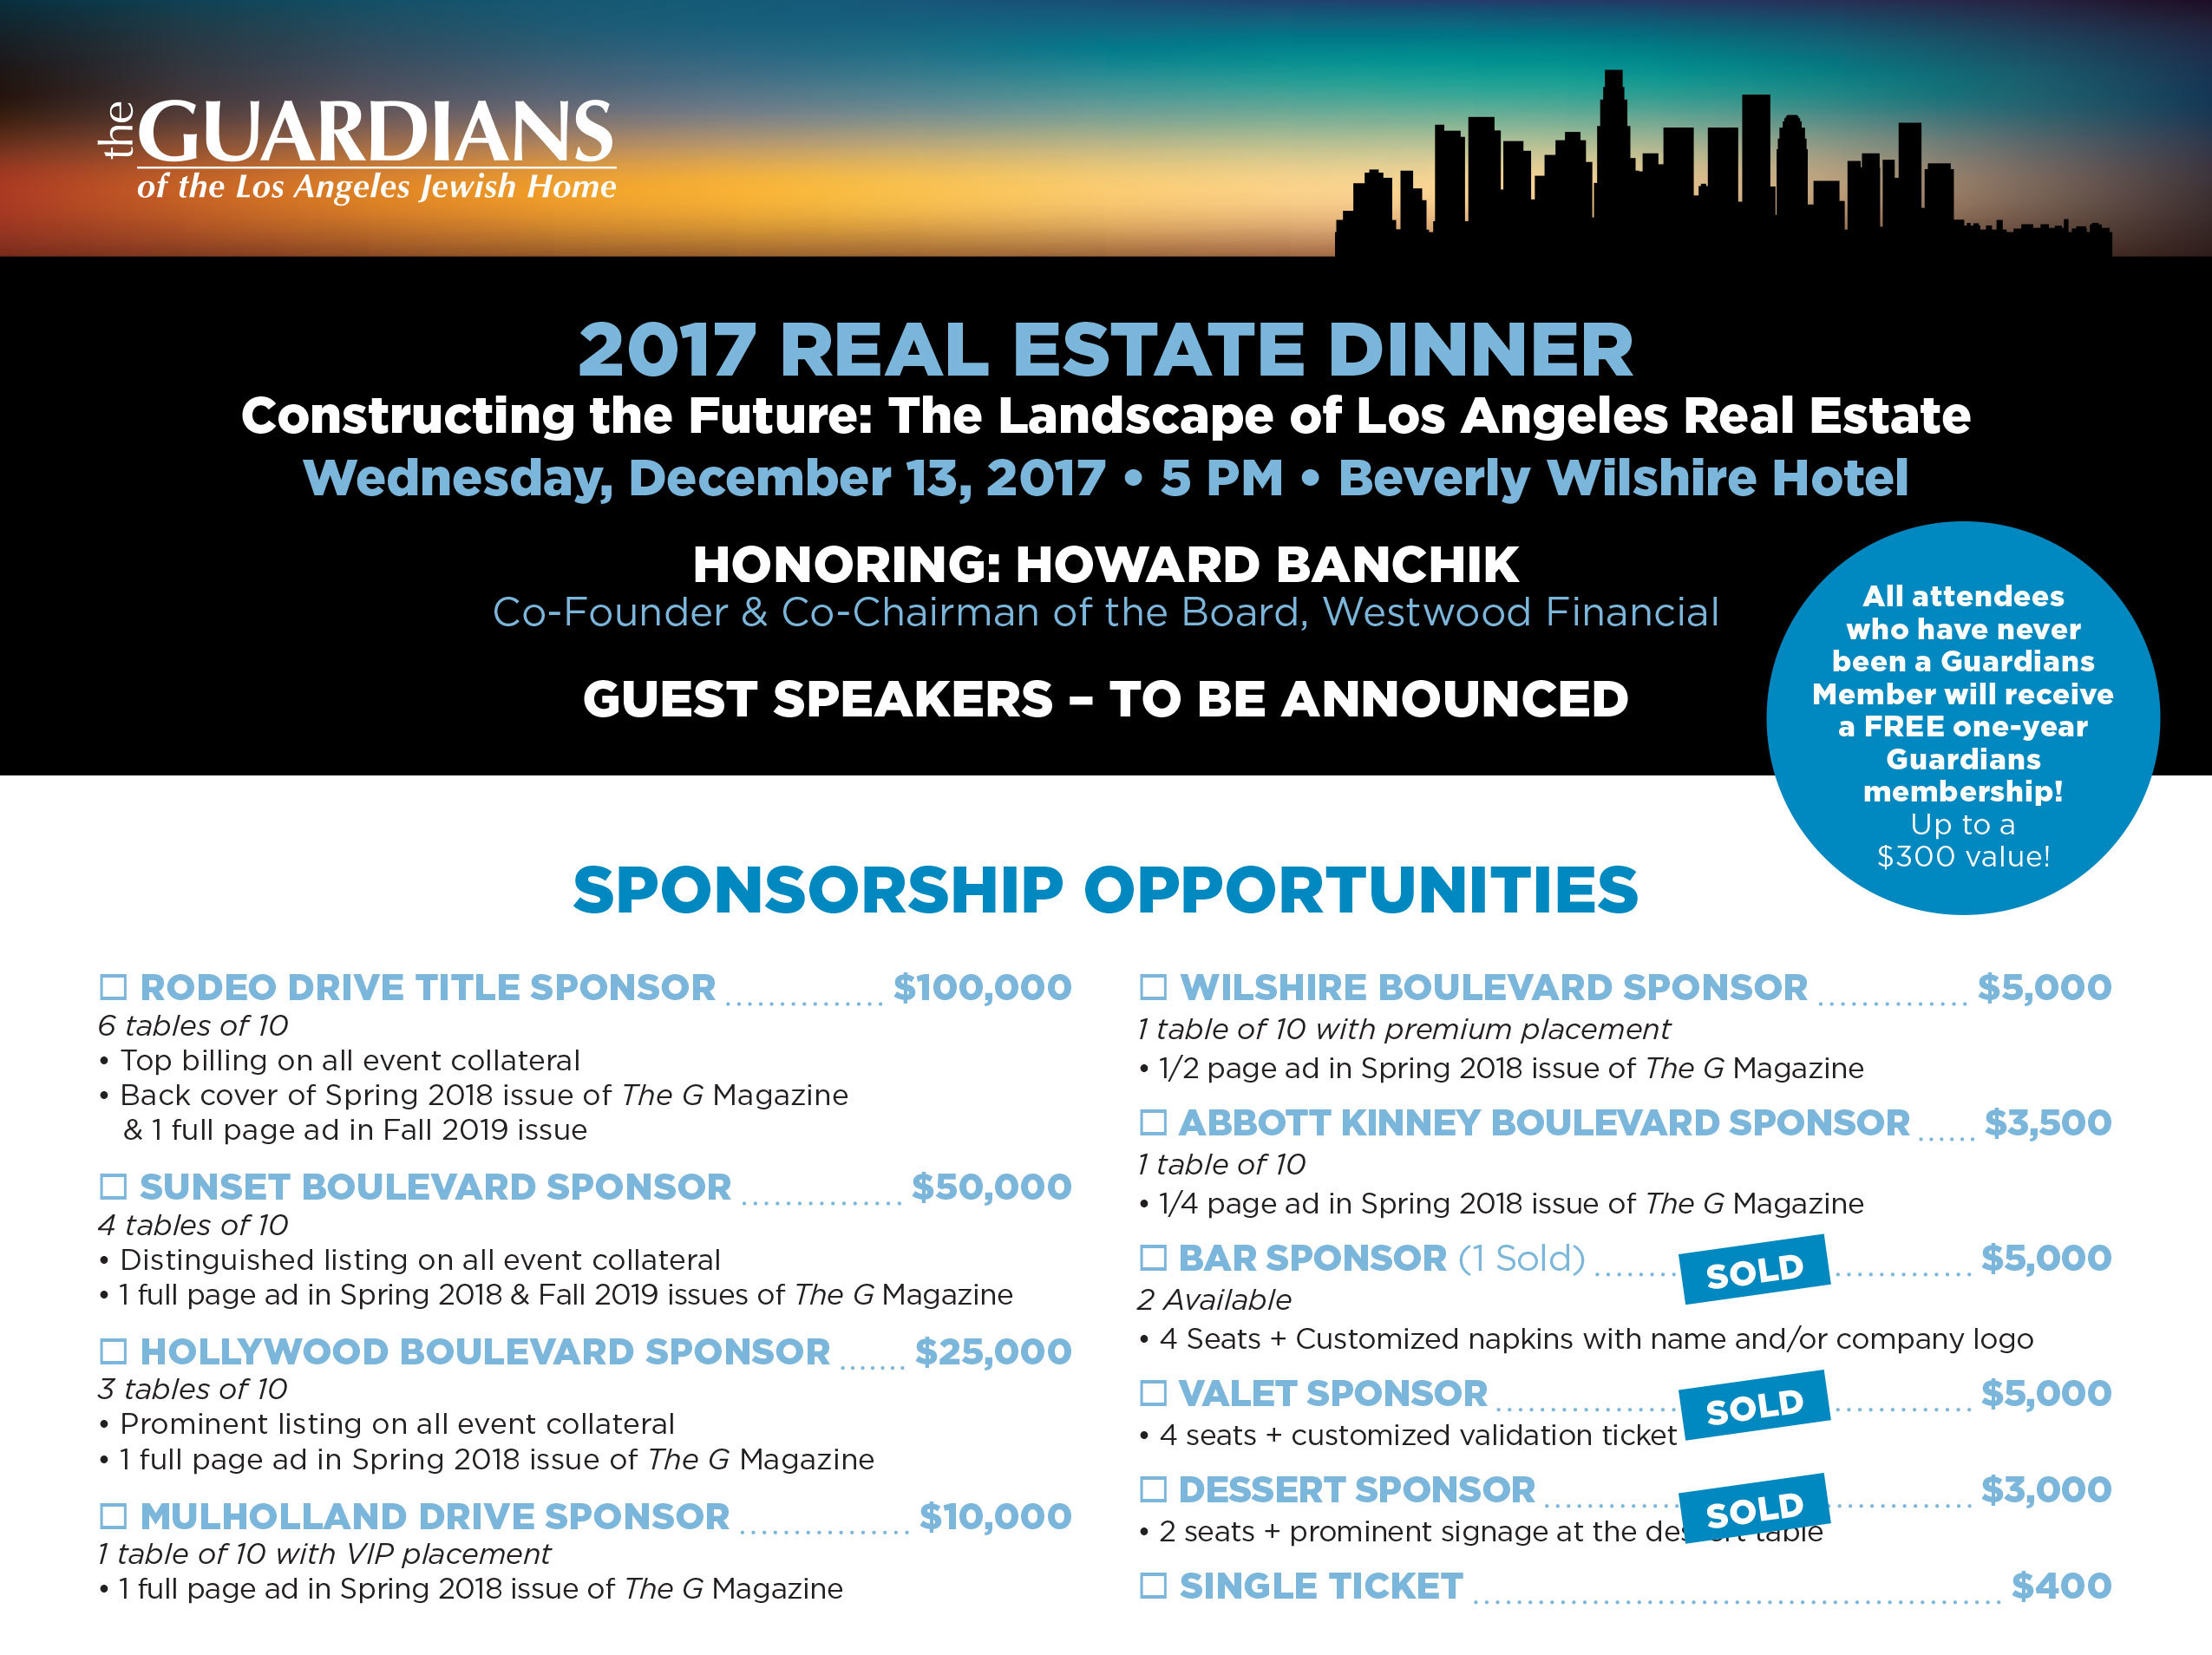 The Guardians 2017 Real Estate Dinner